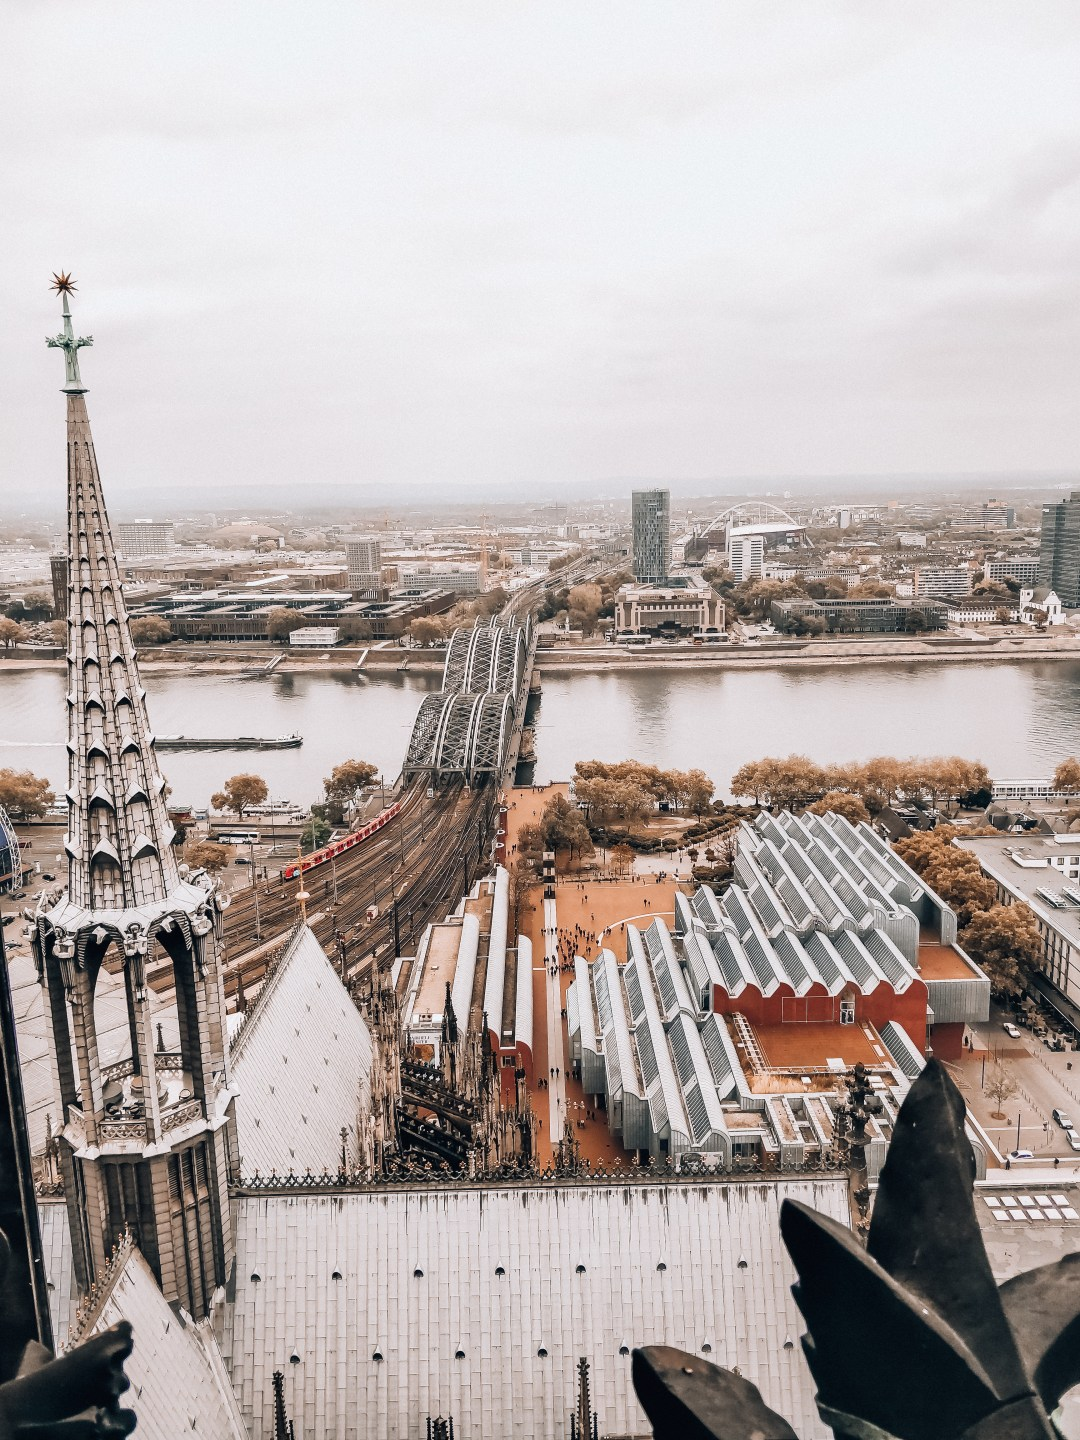 533 steps to enjoy the view from 100 meters